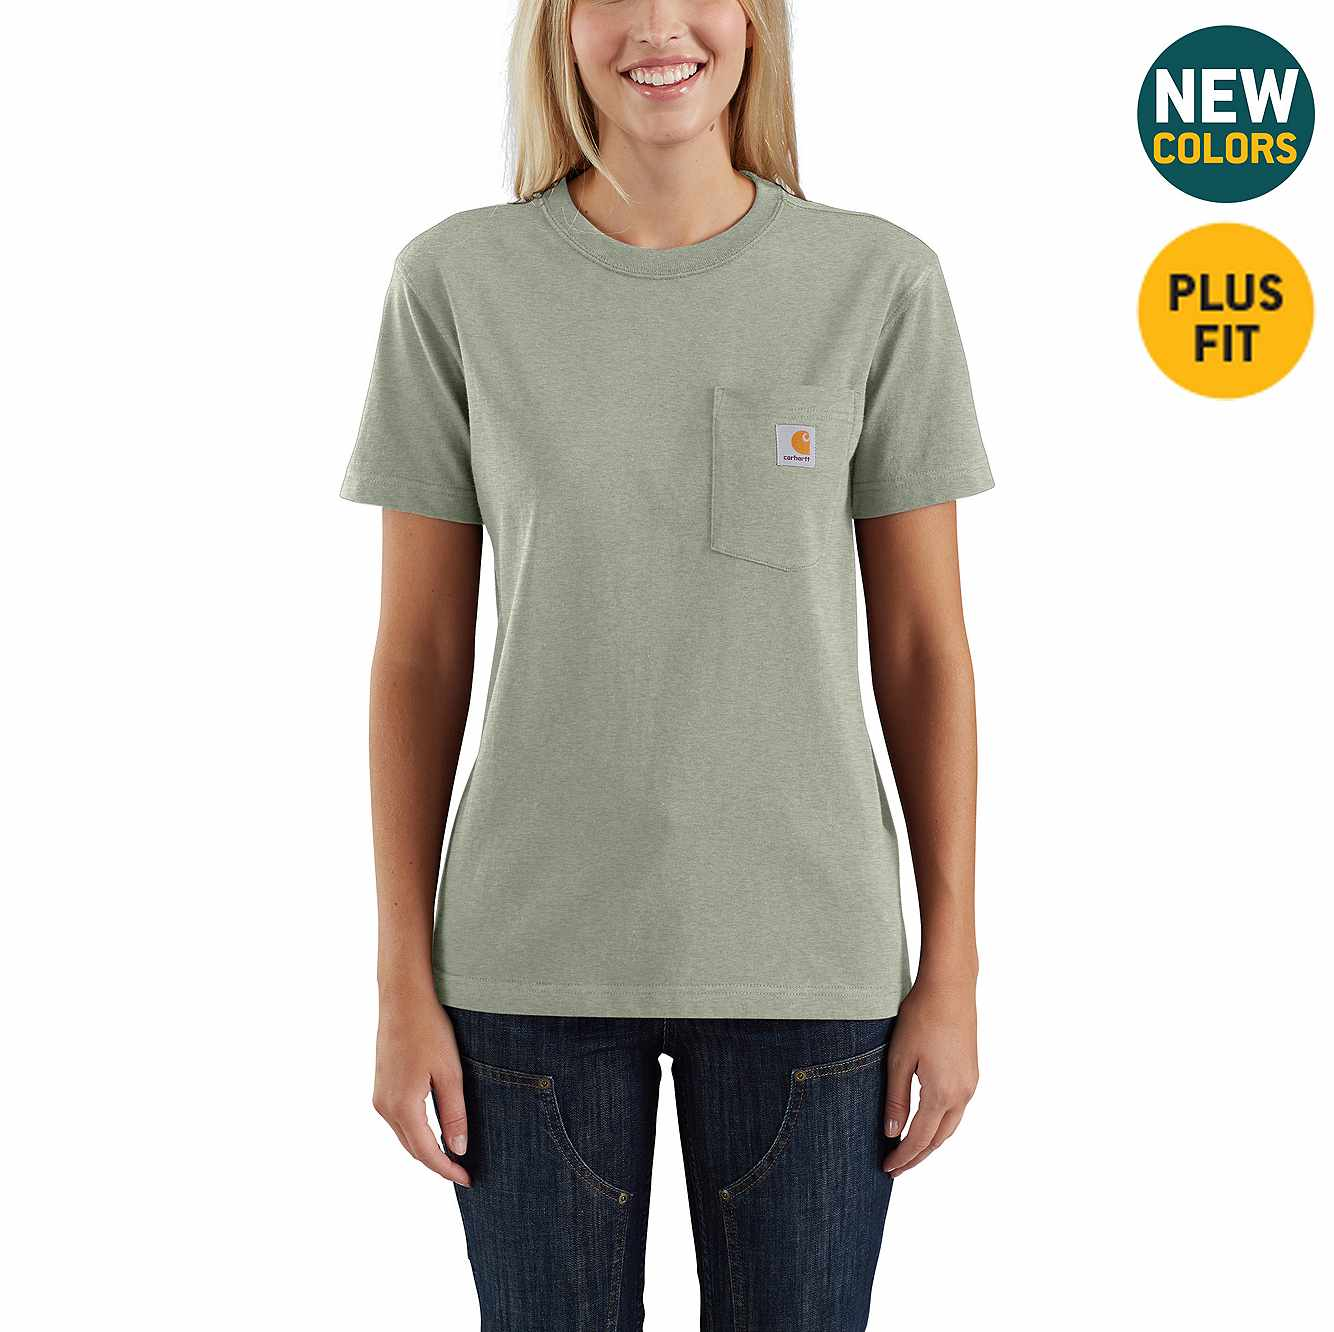 Green//Multi NEW RRP £28 White Stuff Perfect Embroidered Jersey T-shirt 174